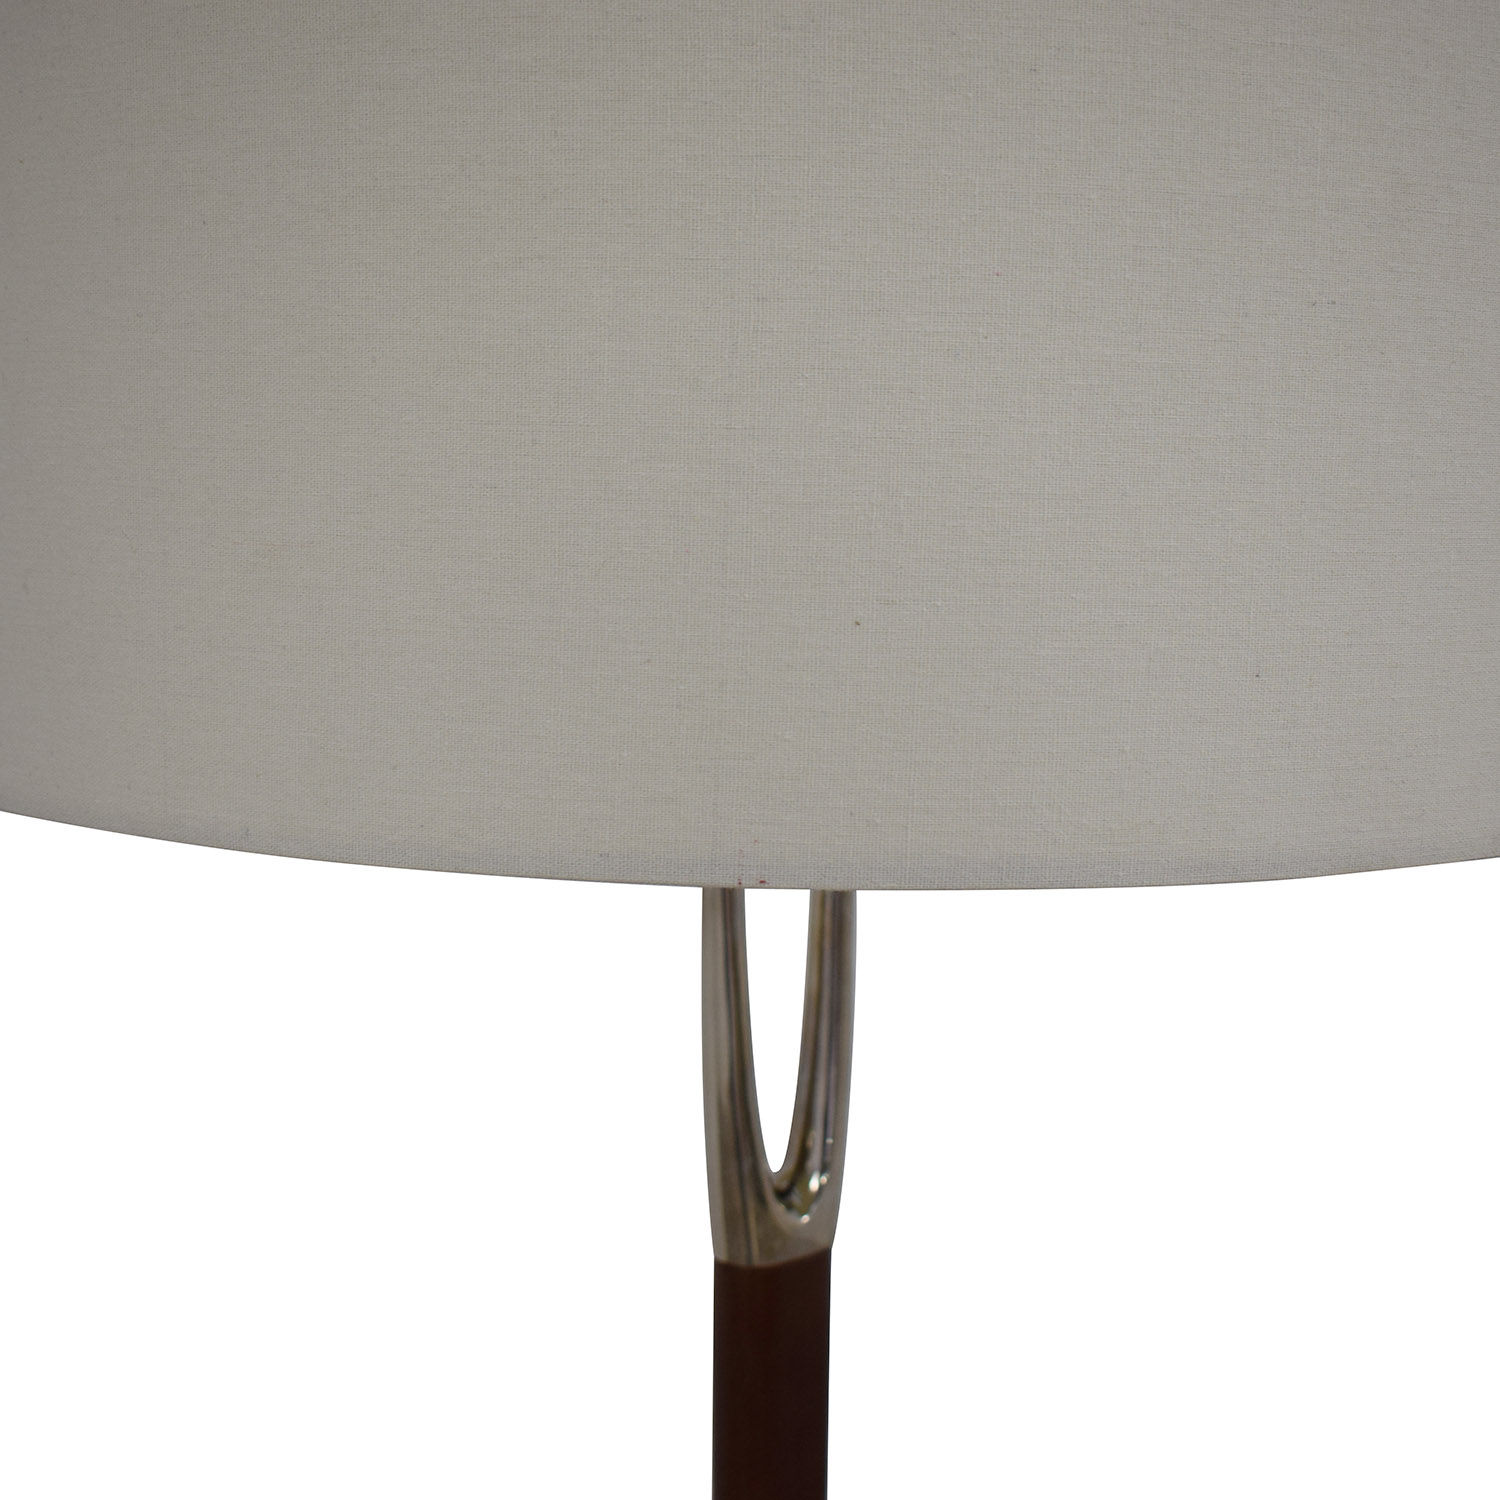 Rejuvenation Rejuvenation Tall Floor Lamp for sale